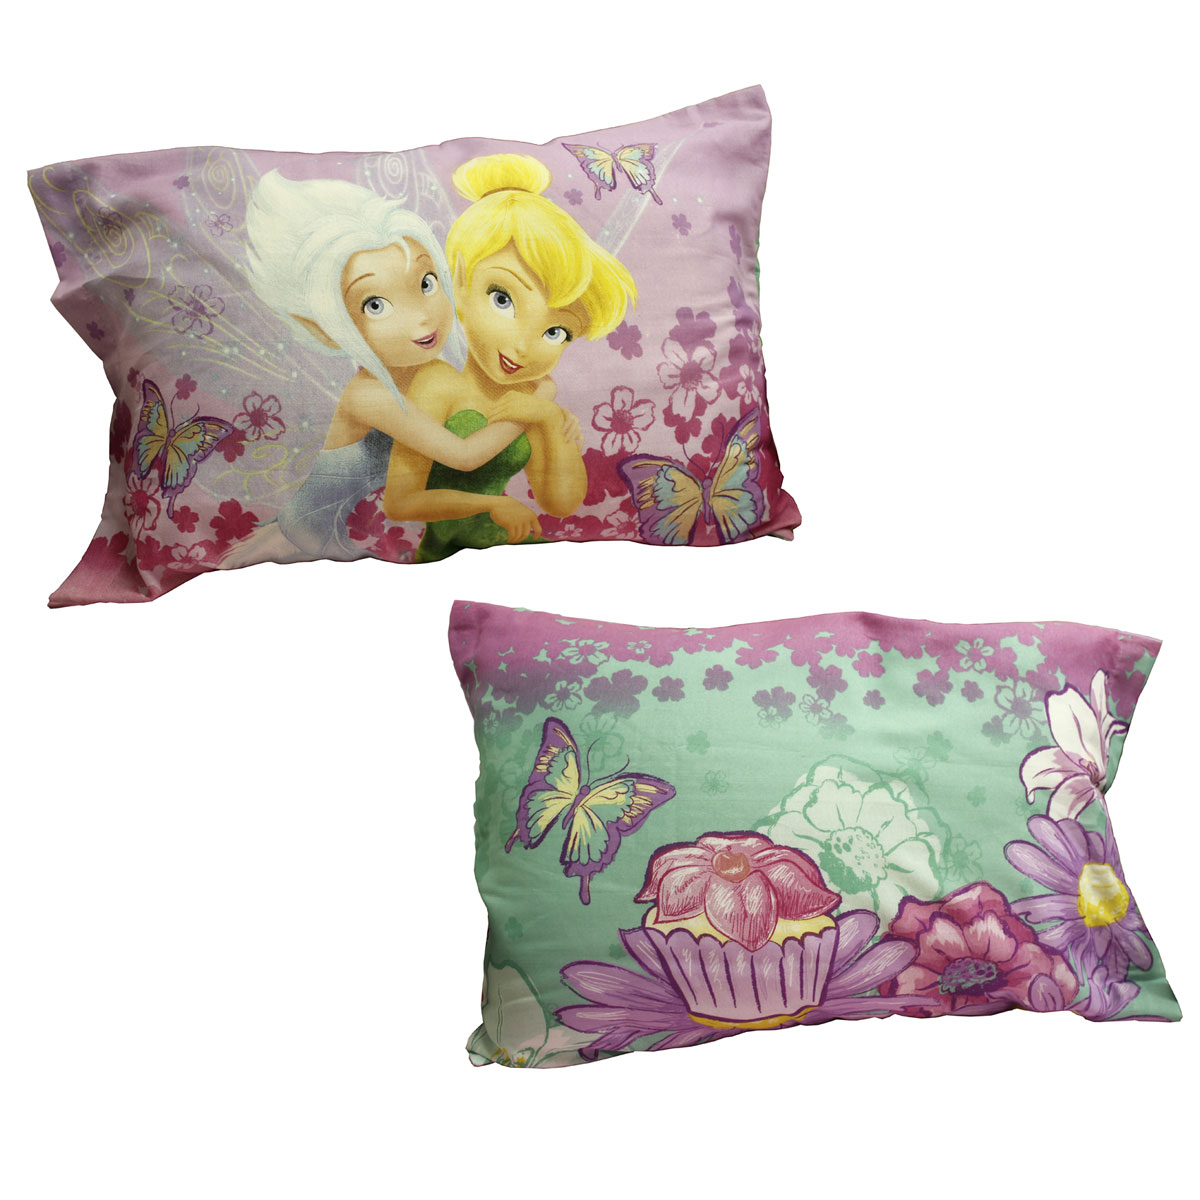 2pc Disney Fairies Pillowcase Set Sweet Tinkerbell and Periwinkle Bedding Pillow Covers by